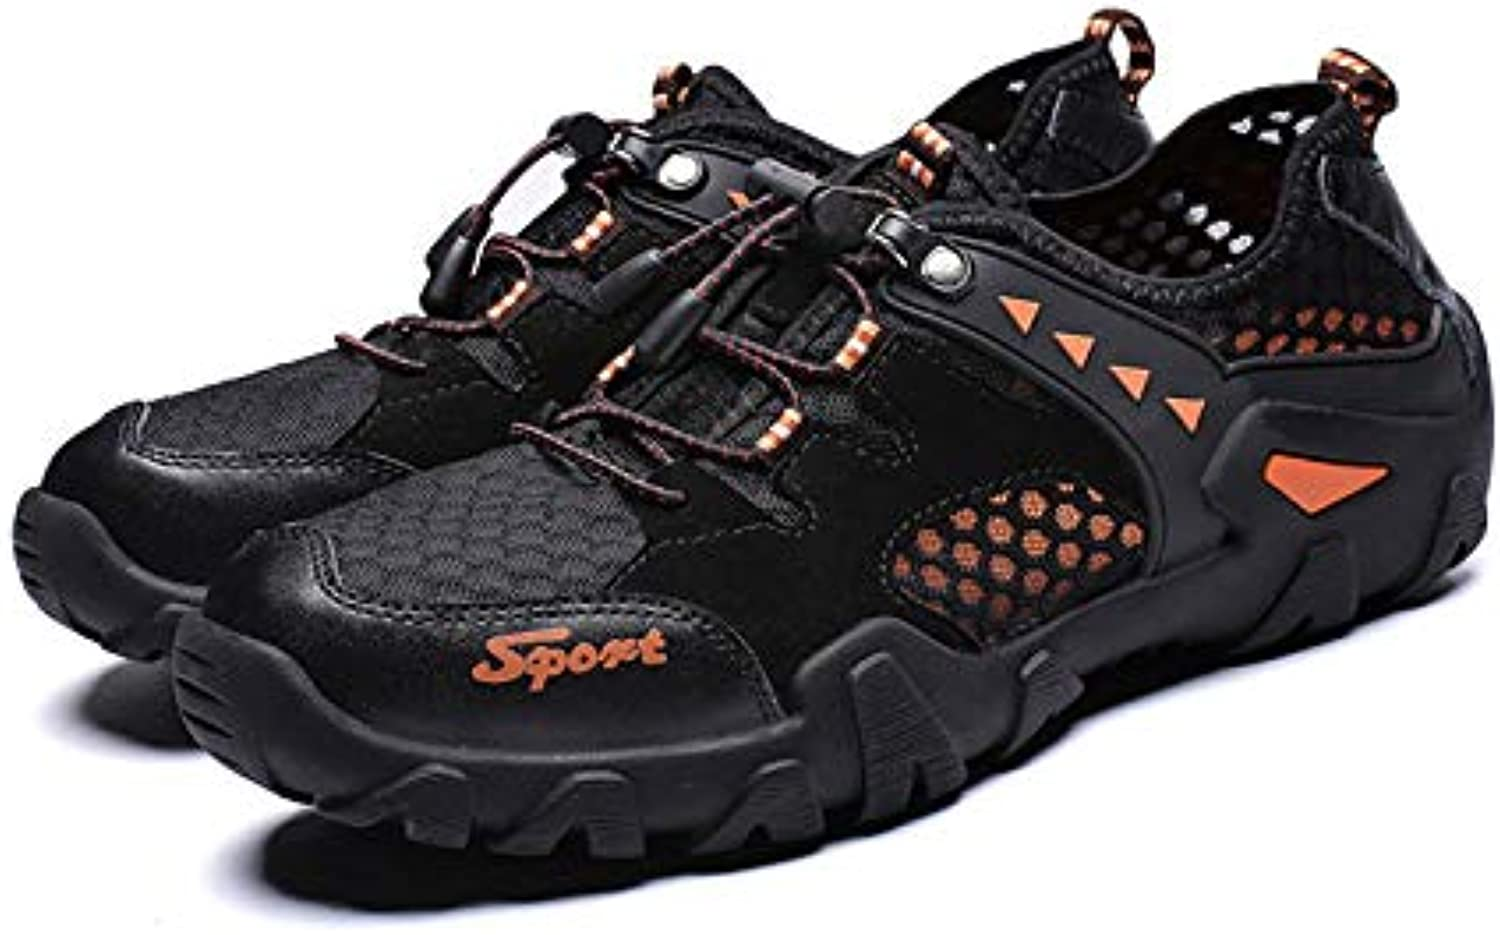 K-Flame Hiking shoes for Men's Outdoor Sport Casual Sandals Beach shoes Anti-skid Cross Country shoes for Trekking Walking Mesh Breathable Sneaker for Camping